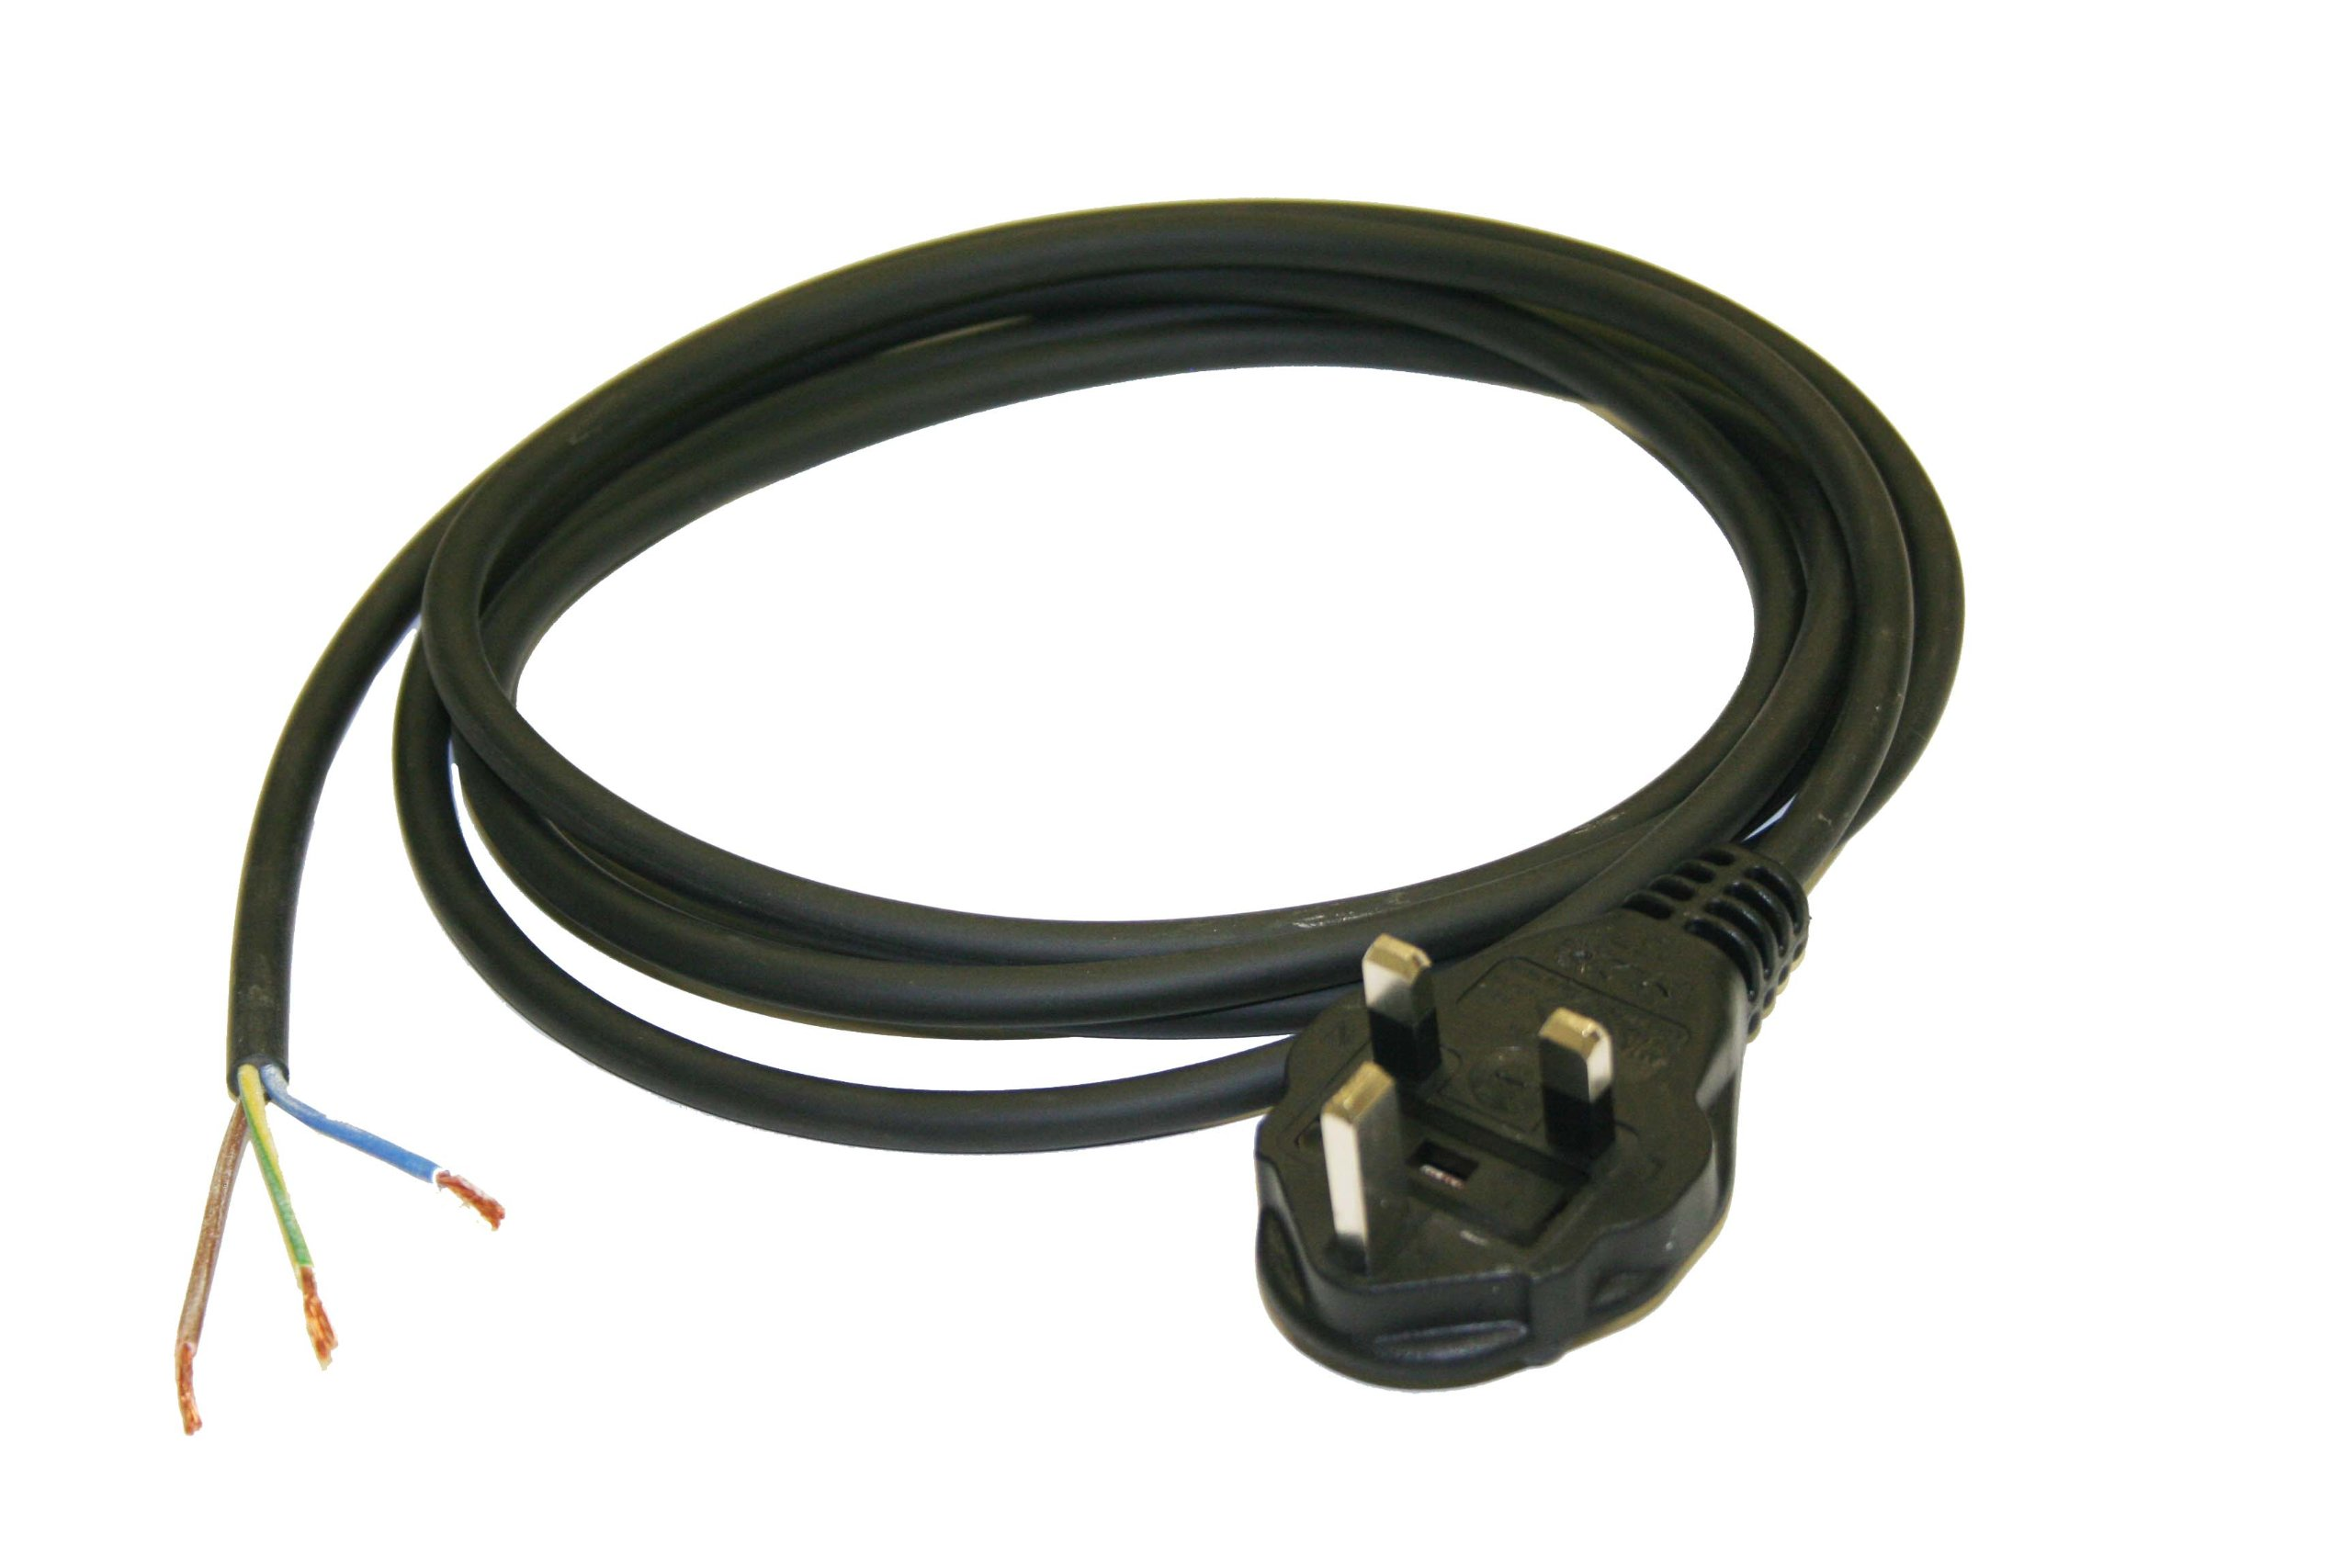 Interpower 86240010 United Kingdom/Ireland Power Cord, BS 1363/A Plug Type, Black Plug Color, 13A Plug Fuse, Black Cable Color, 10A Amperage, 250VAC Voltage, 2.5m Length